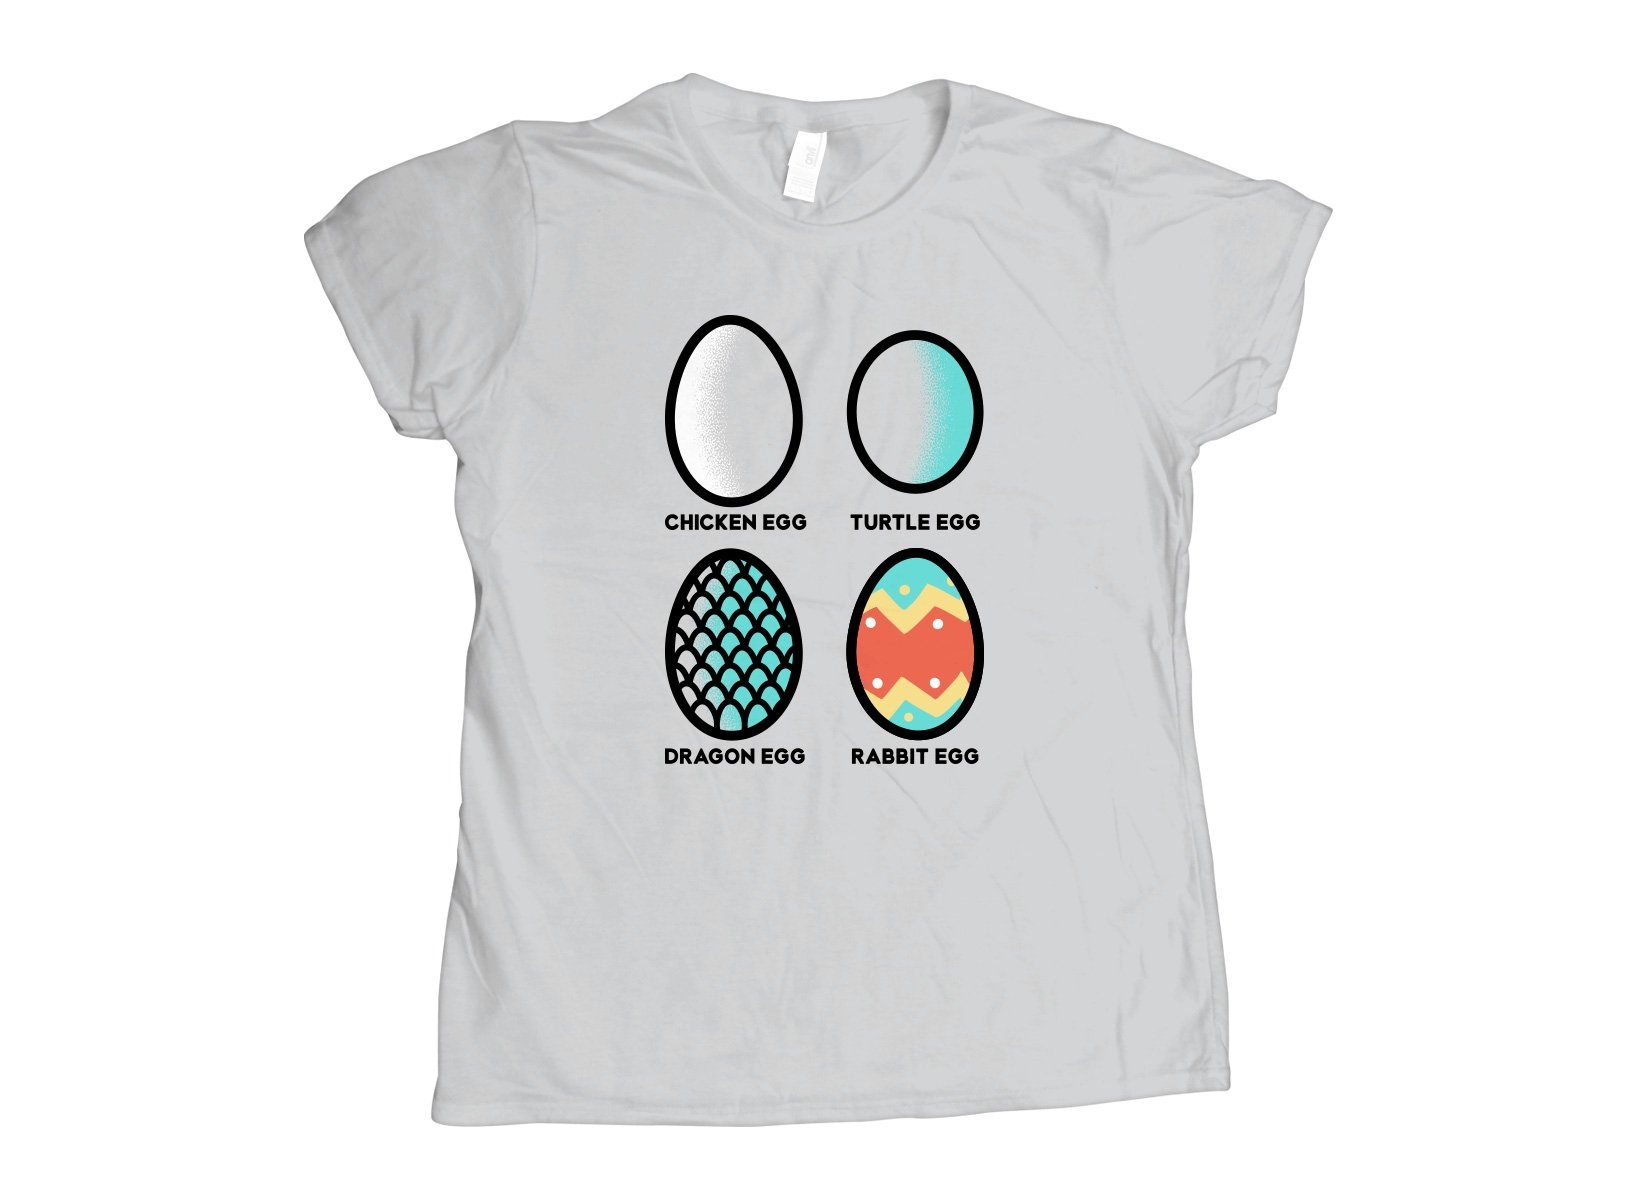 Rabbit Egg on Womens T-Shirt